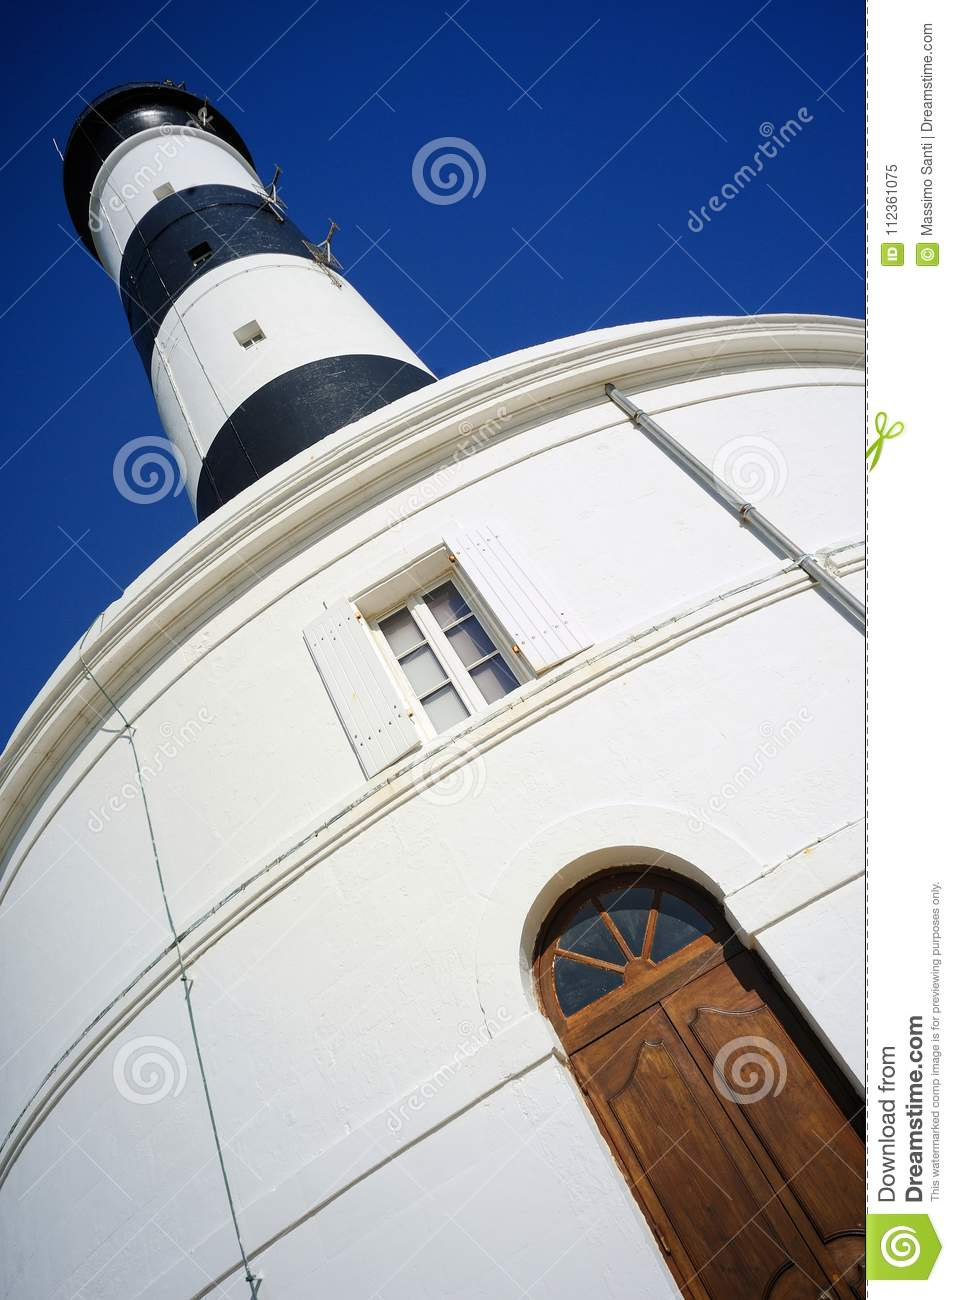 Phare de Chassiron. Island D`Oleron in the French Charente with striped lighthouse. France.